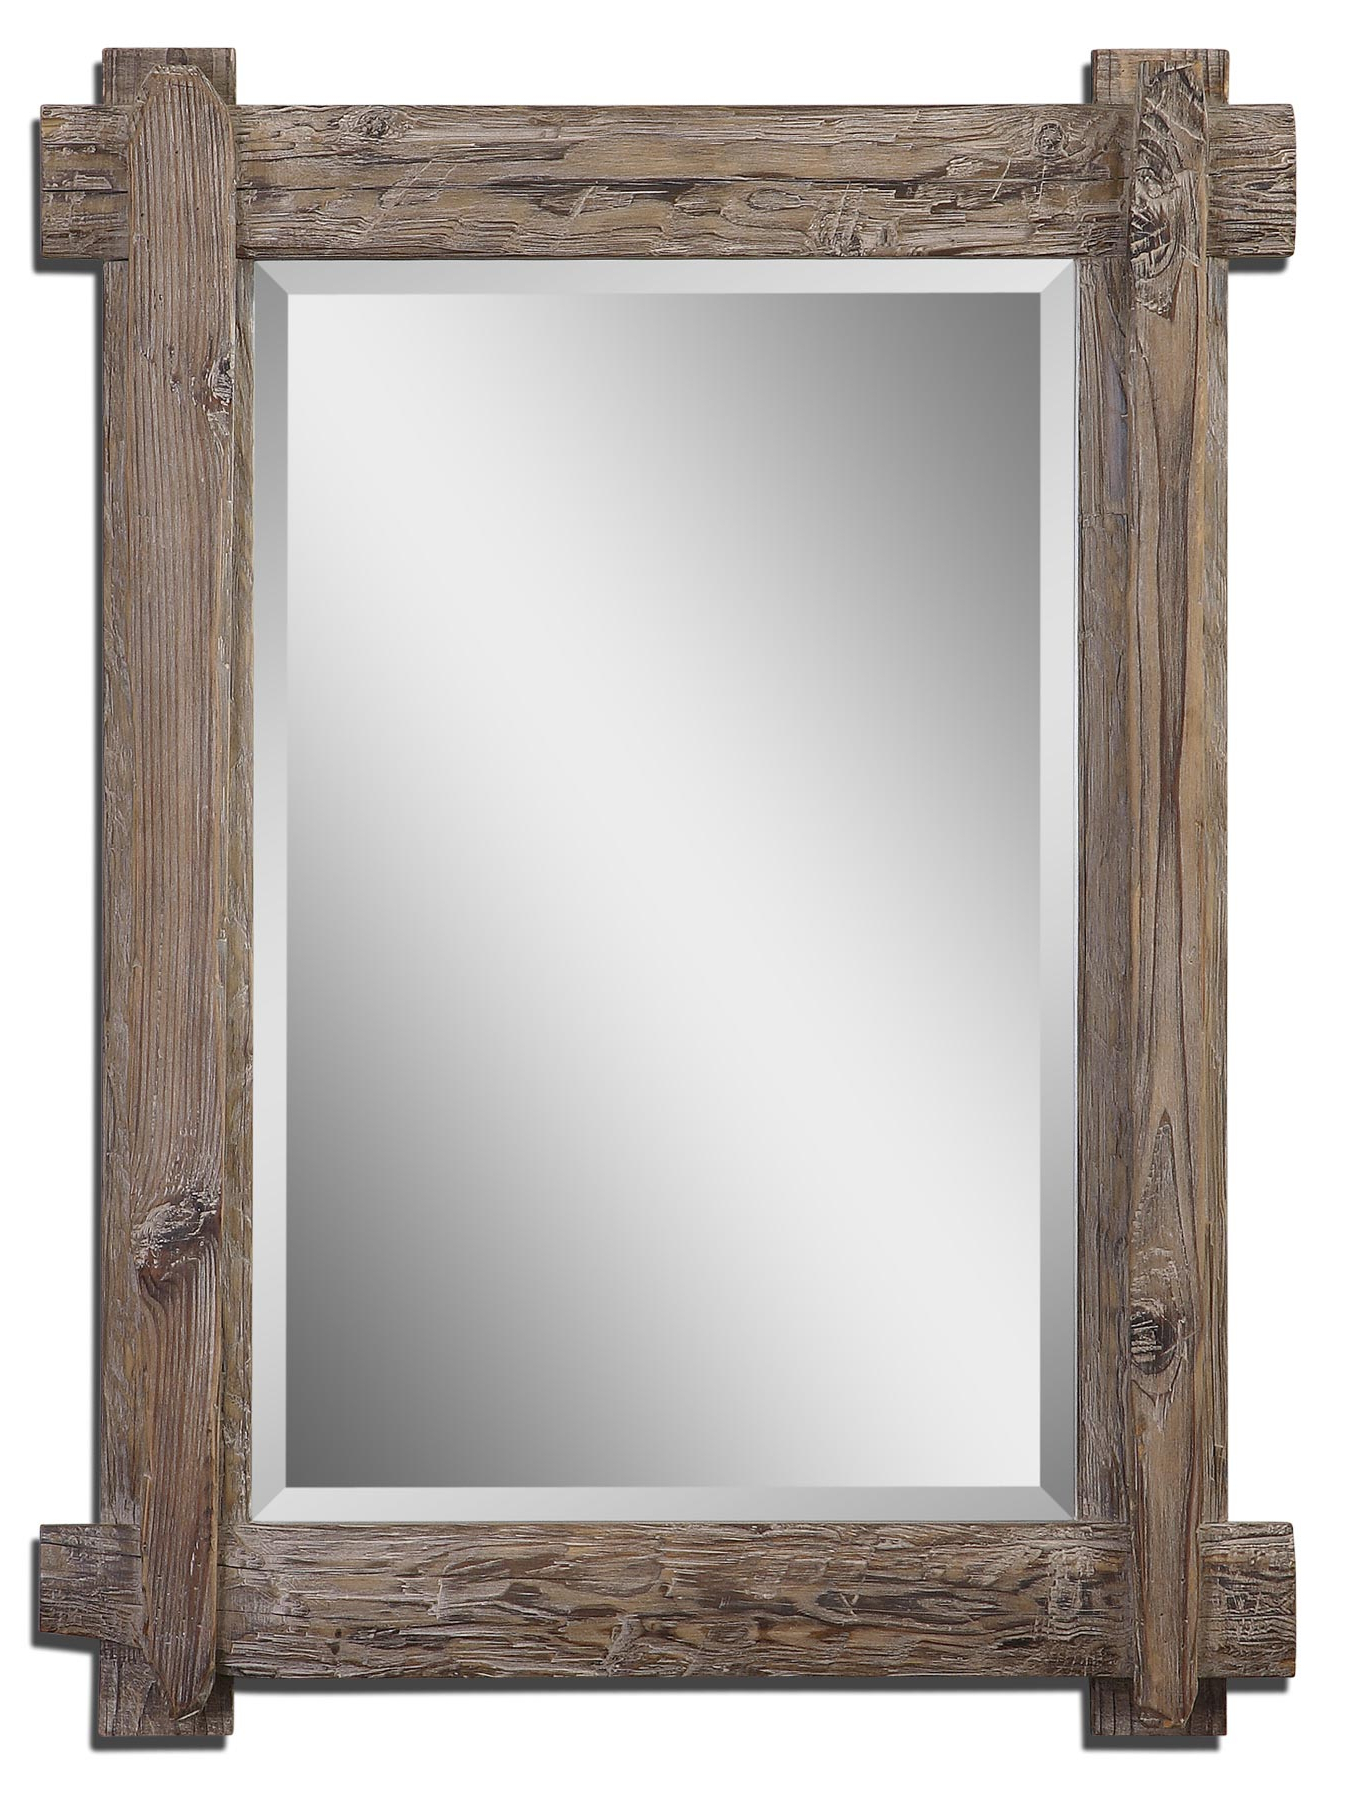 Large Wood Framed Wall Mirrors Regarding Famous Wood Framed Wall Mirrors V Sanctuarycom Unfinished 43X32 Mirror (View 20 of 20)